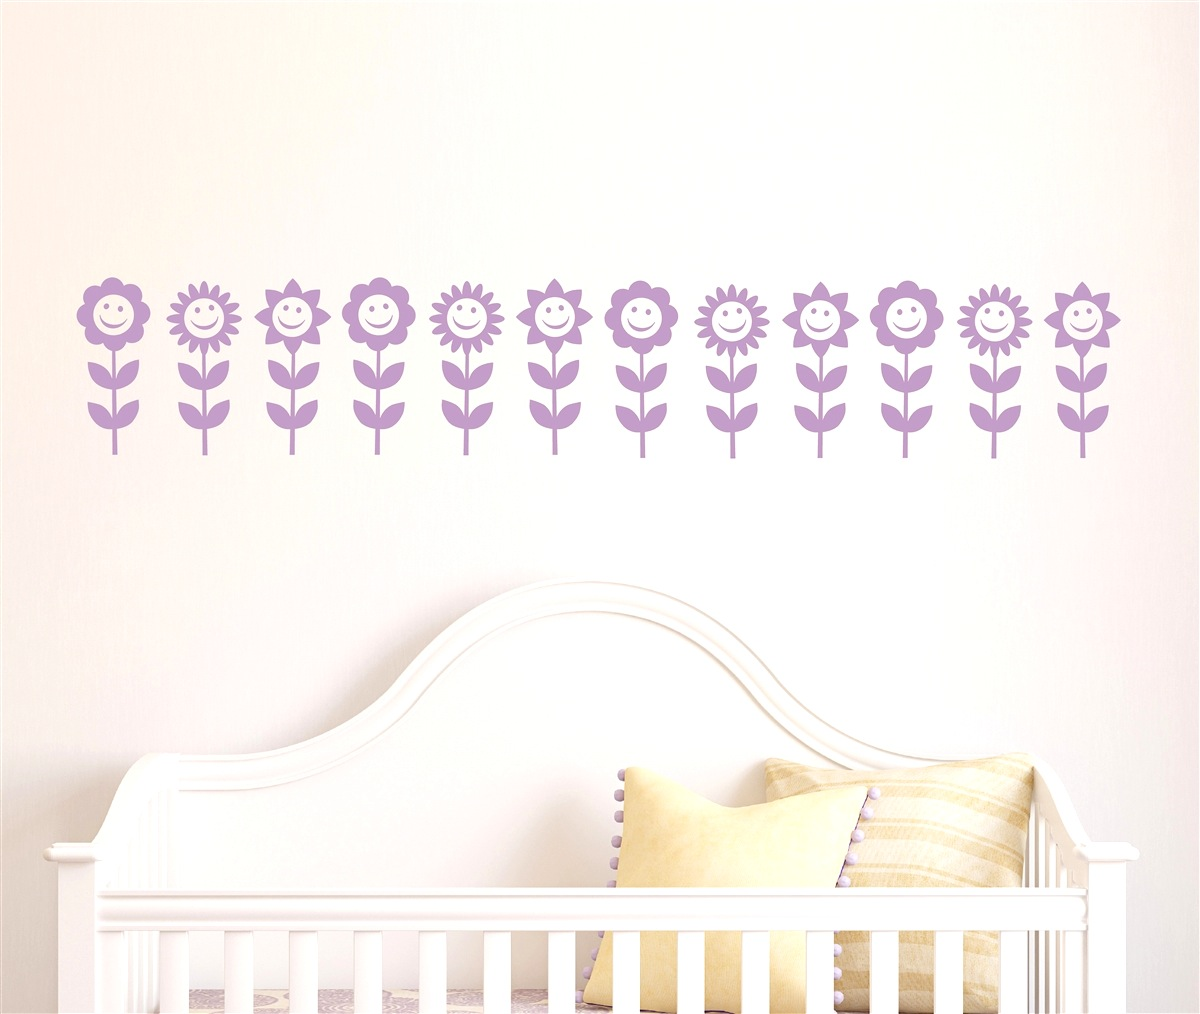 Baby girl room clipart picture freeuse Baby. wall borders for girls room: Girls Bedroom Clipart Border ... picture freeuse